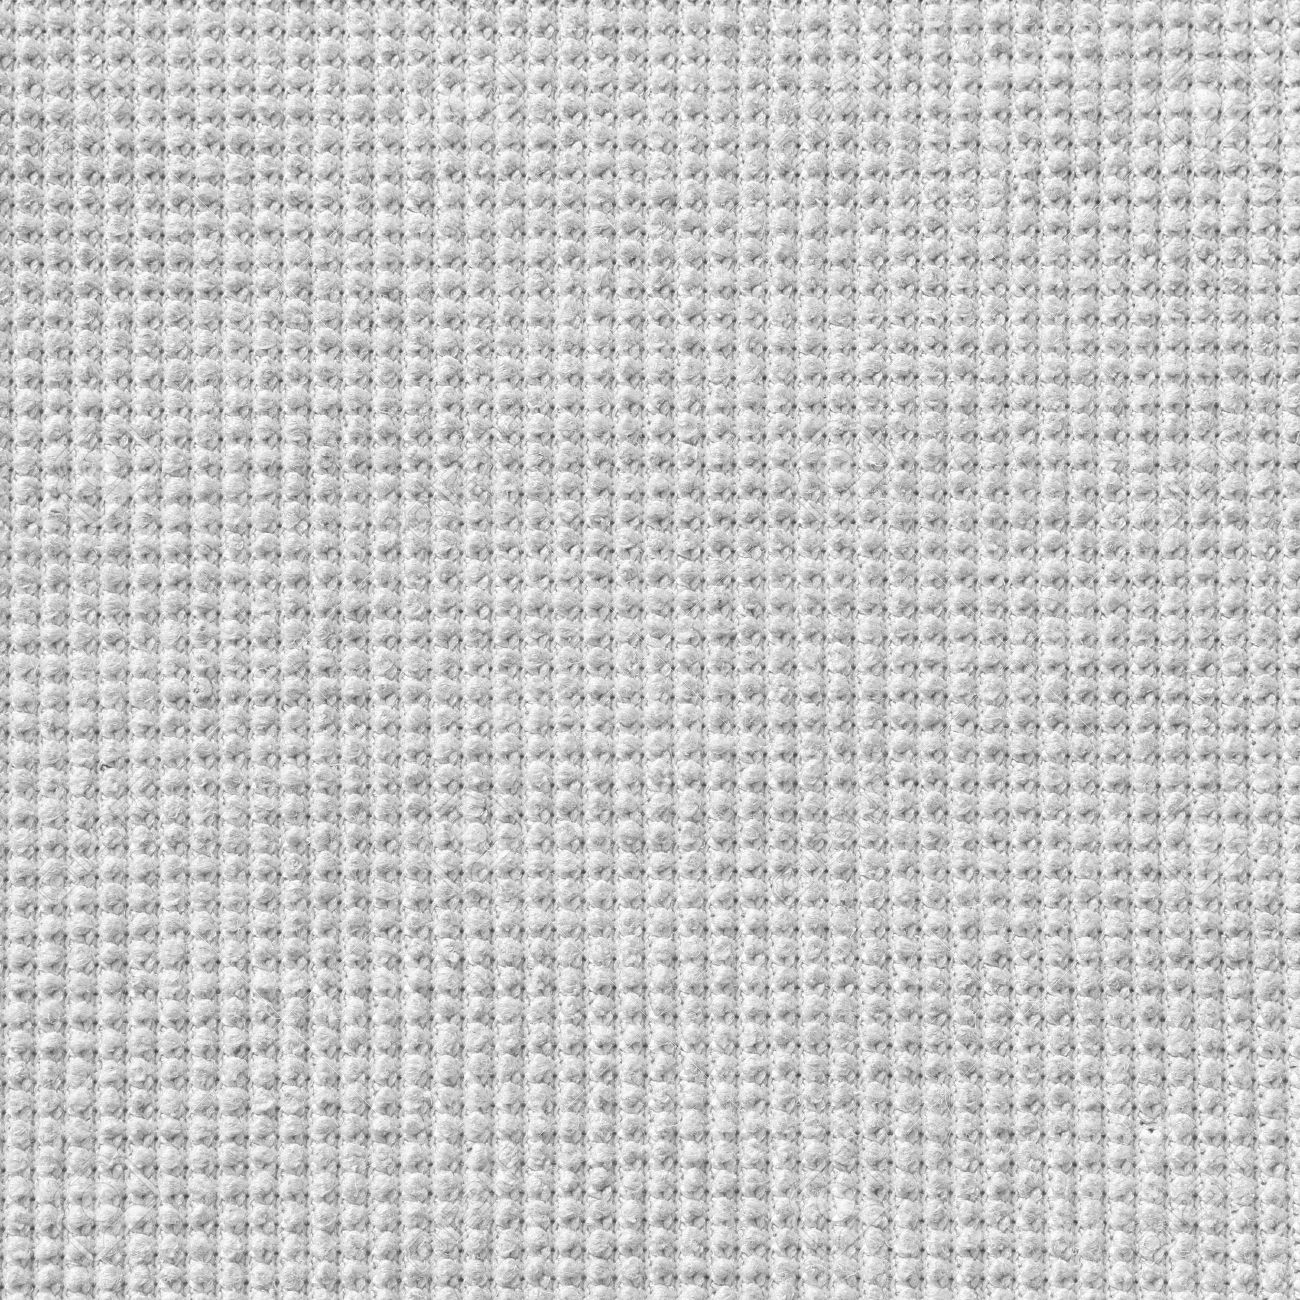 White Microfiber Cloth Texture For Background Stock Photo, Picture ... for White Woven Fabric Texture  155fiz